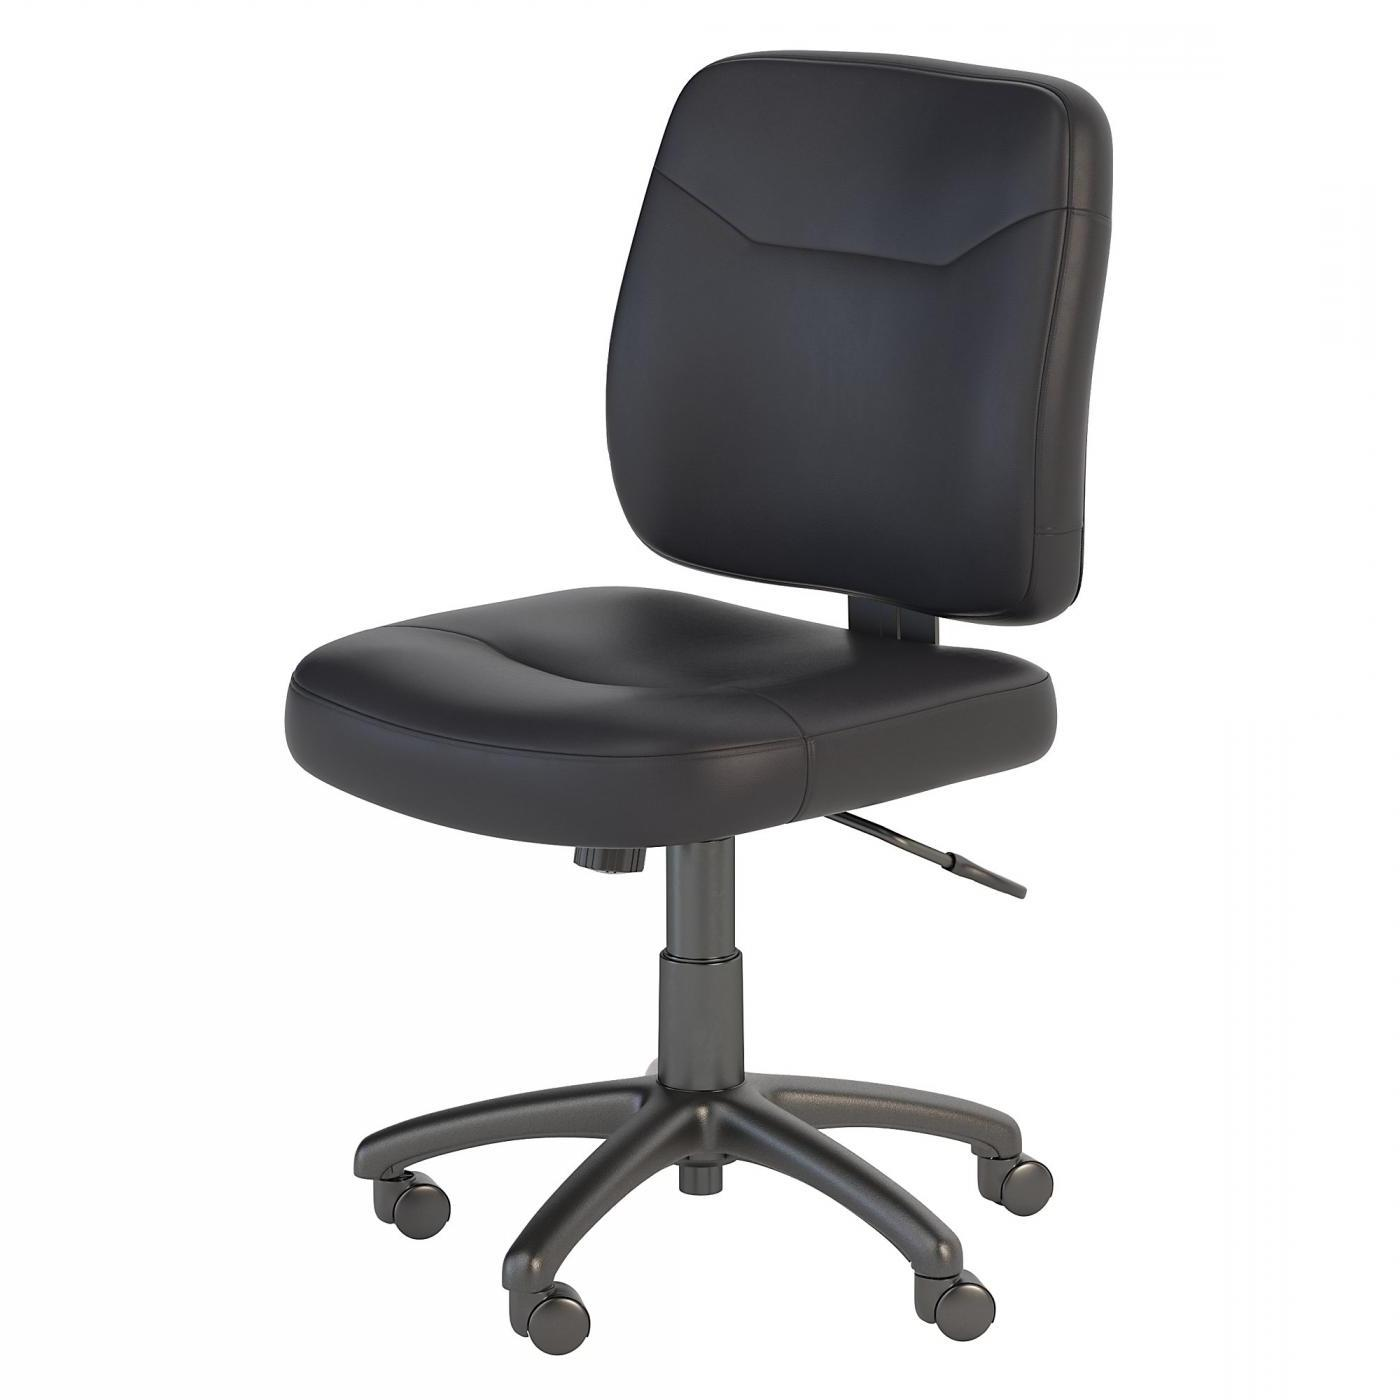 <font color=#c60><b>BUSH BUSINESS FURNITURE STANTON LEATHER TASK CHAIR. FREE SHIPPING</font></b> </font></b></font></b>